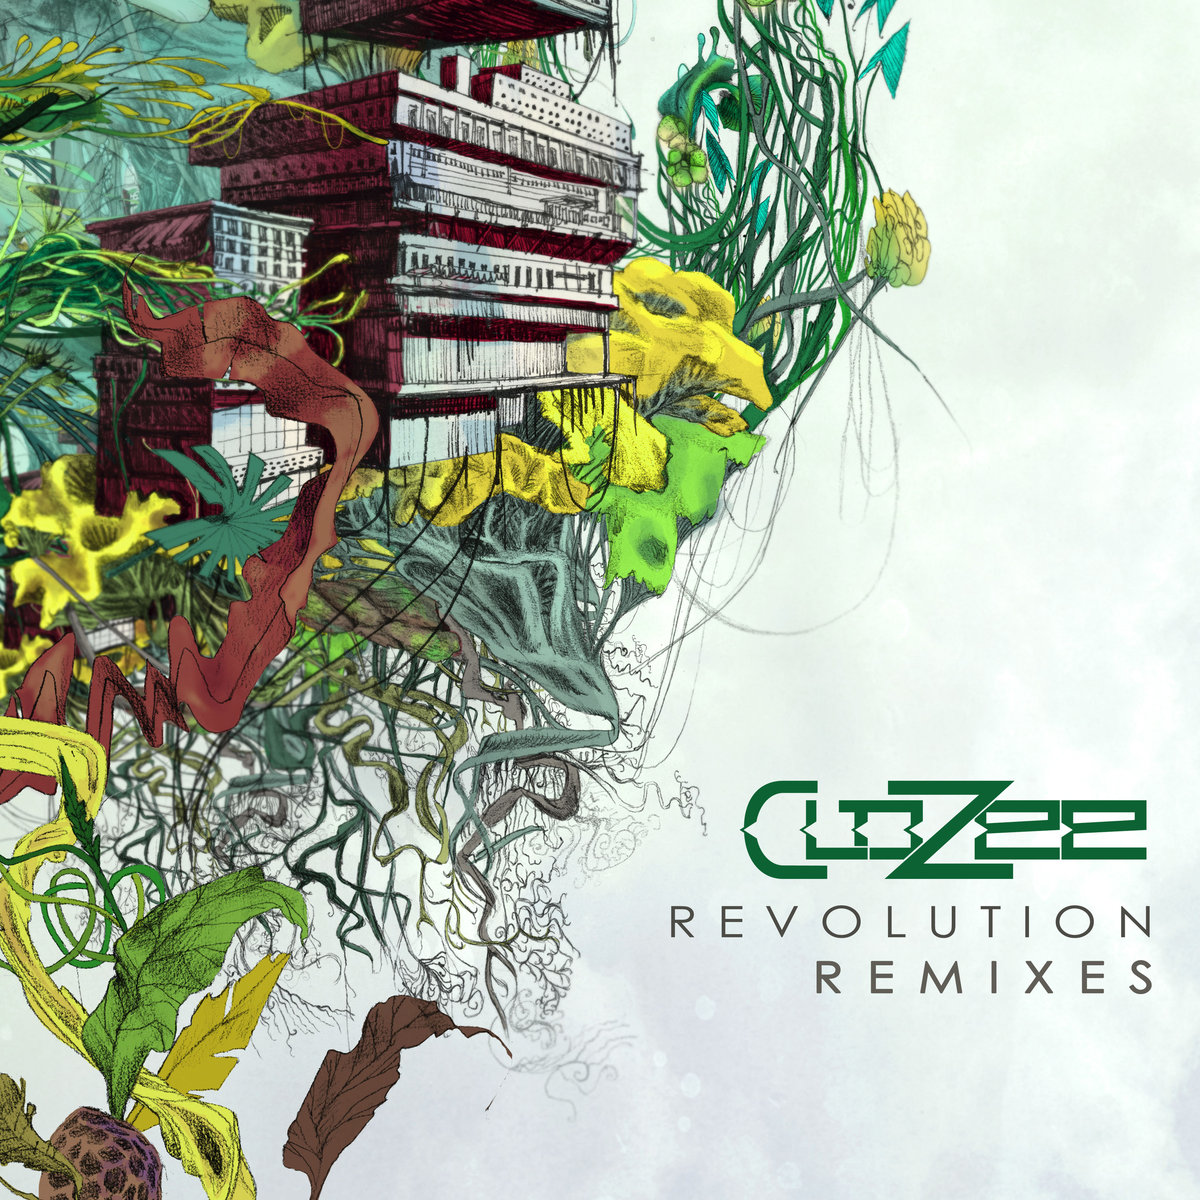 CloZee - Anticlimax (Electrocado Remix) @ 'Revolution Remixes' album (chill, downtempo)